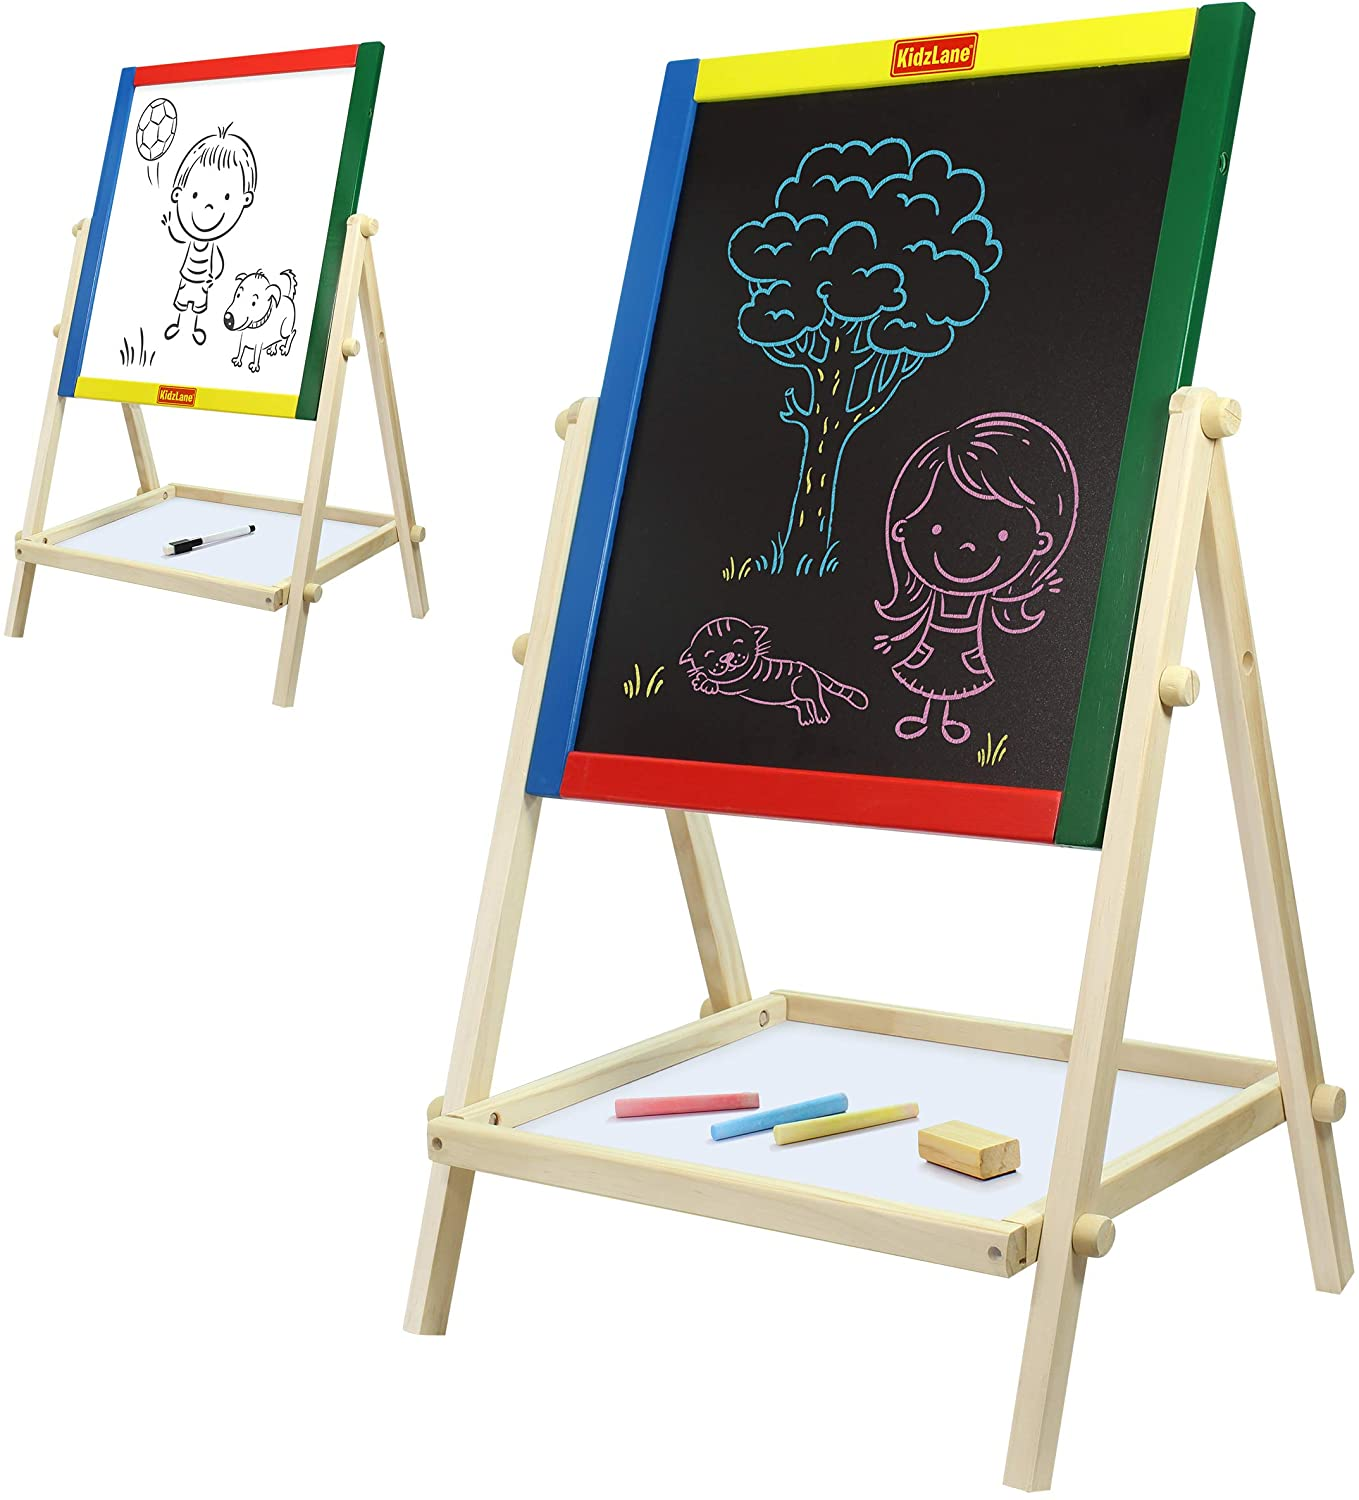 Kidzlane Double Sided Wooden Kids Easel - Features Whiteboard and Chalkboard with Built-in Shelf - Art Accessories Included Ages 3+